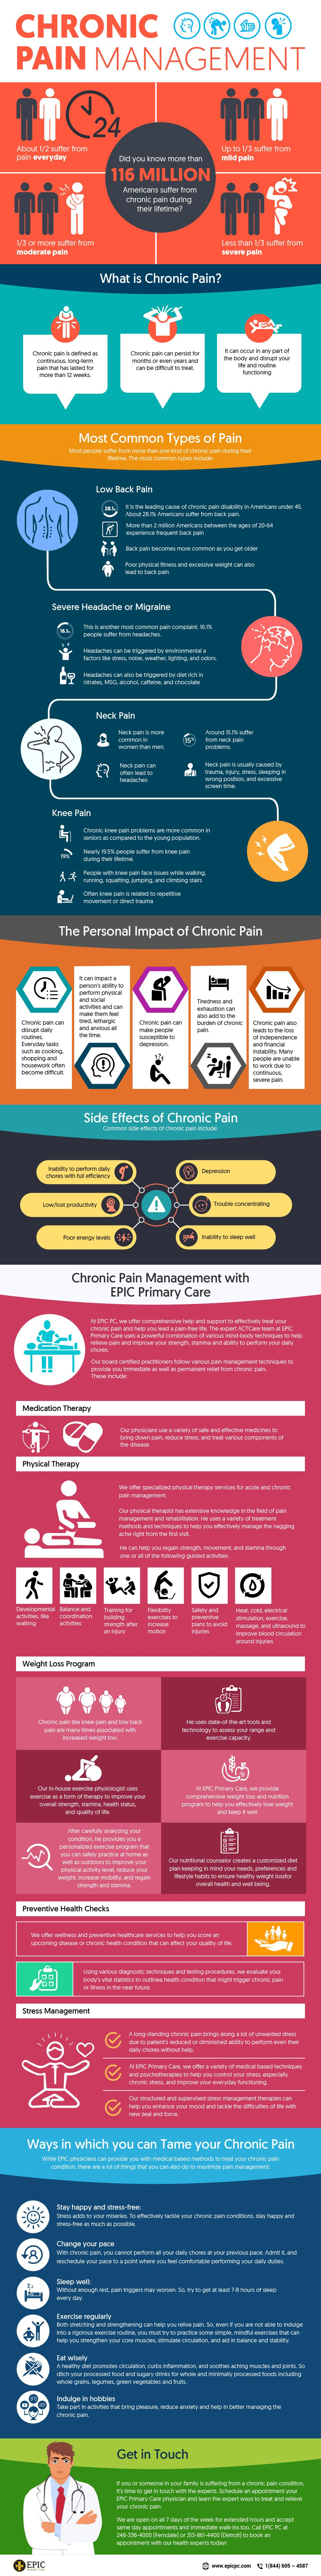 Everything You Need to Know about Chronic Pain Management